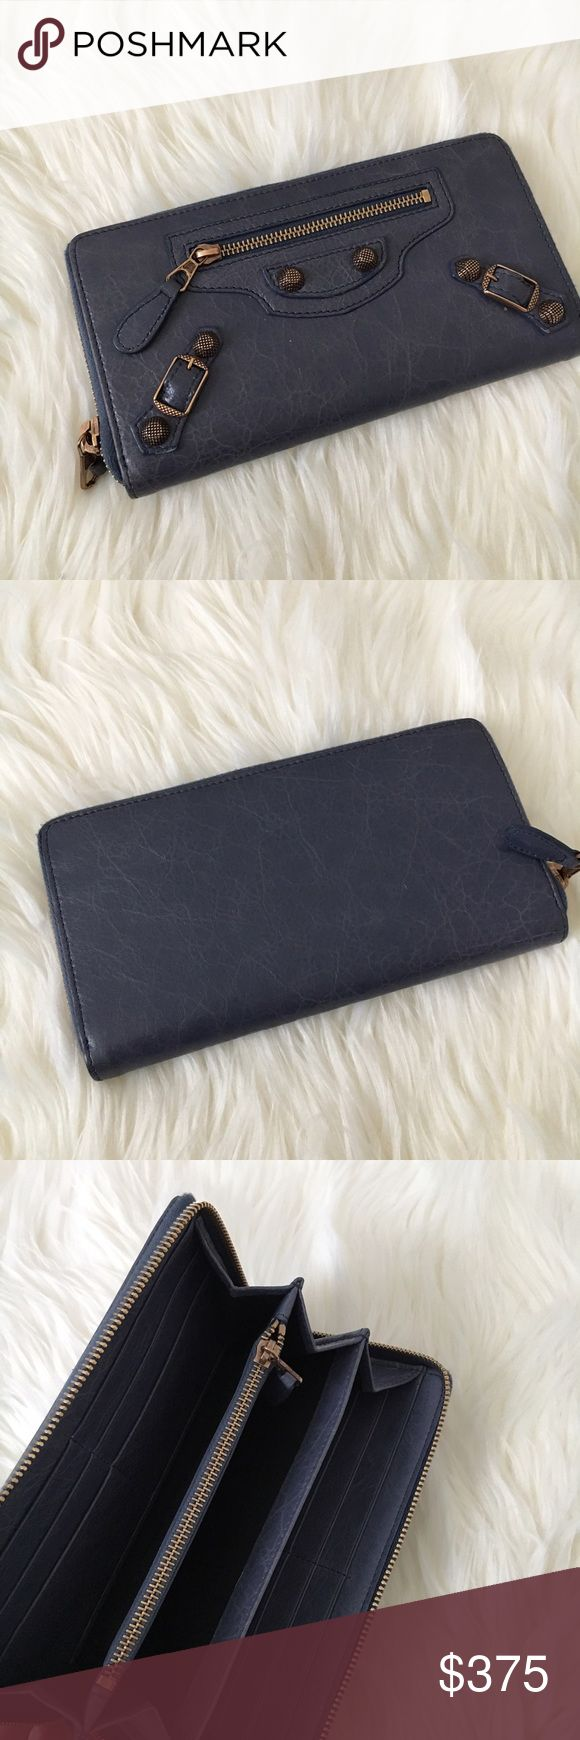 Balenciaga Wallet More details available soon. NO TRADES. Balenciaga Bags Wallets